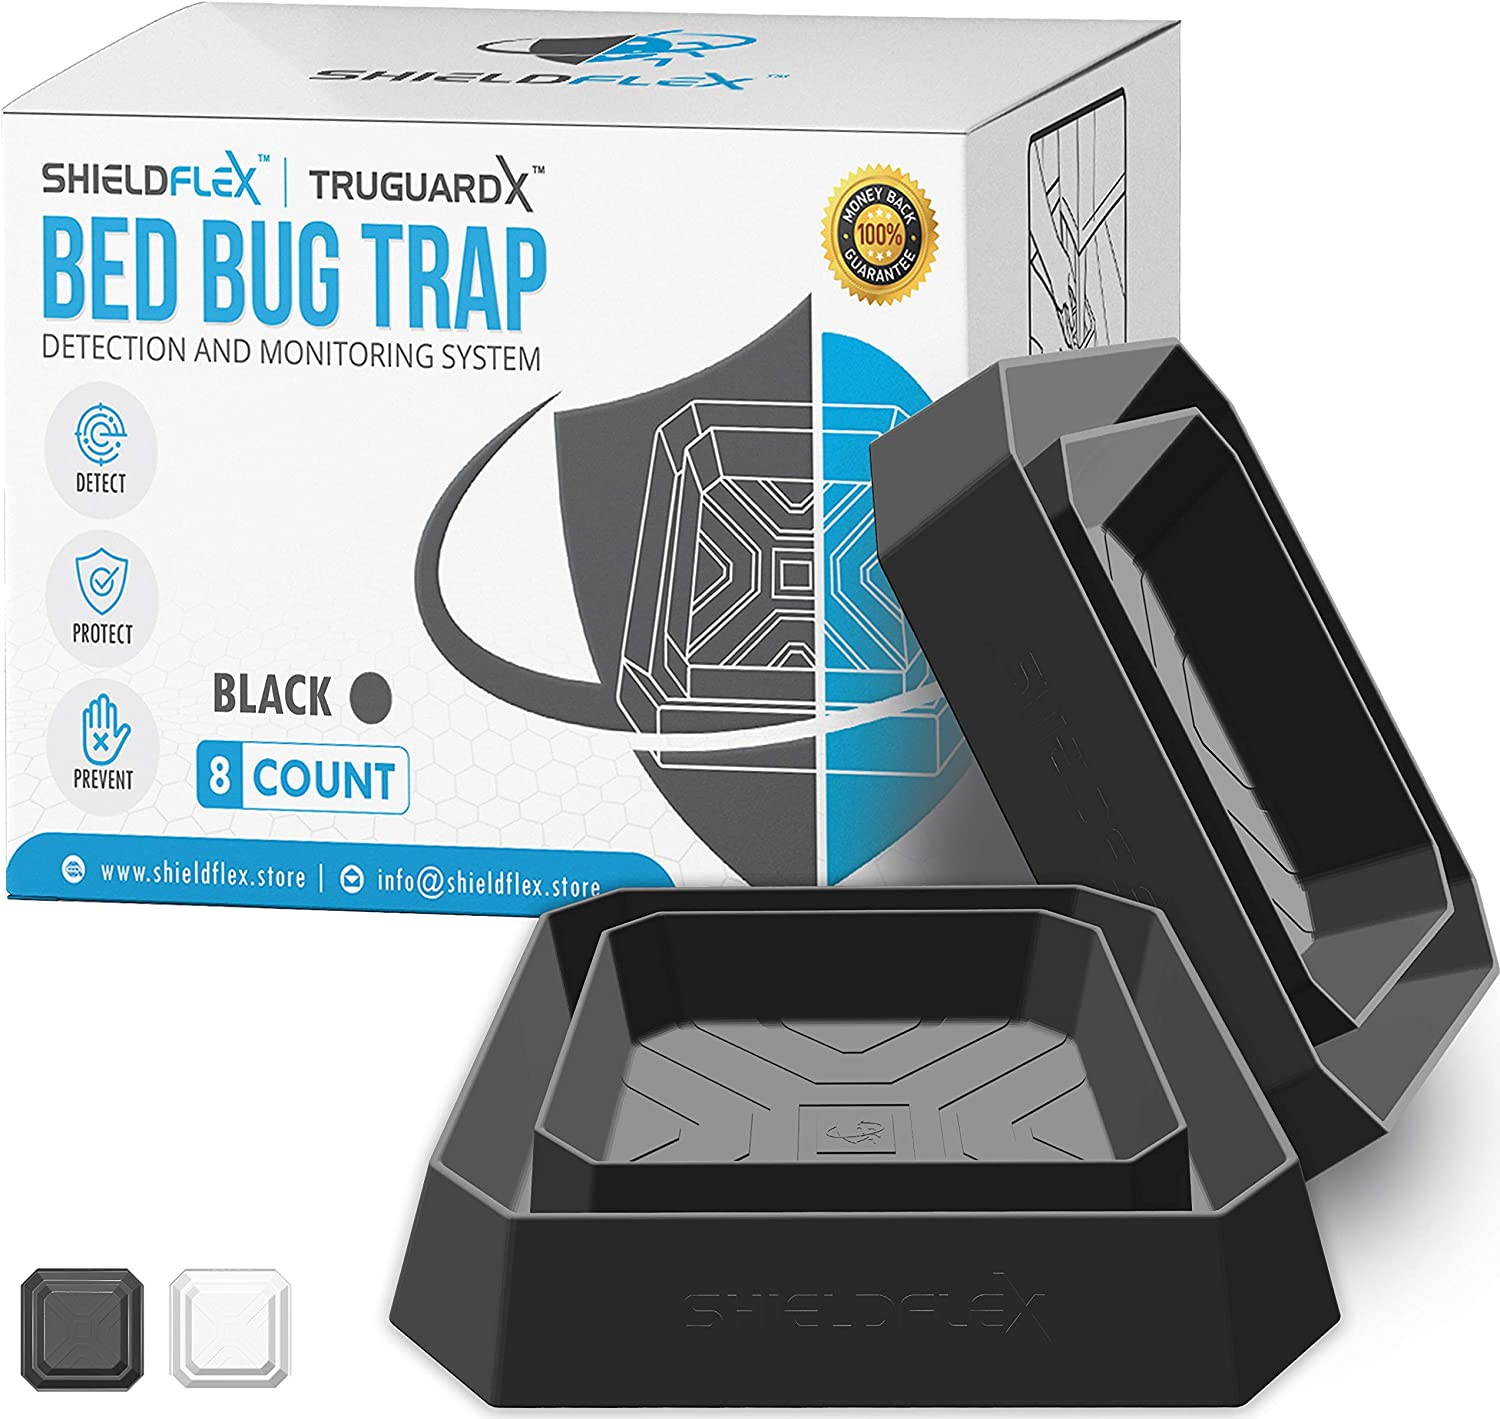 Bed Bug Trap — 8 Pack | TruGuard X Bed Bug Interceptors (Black) | Eco Friendly Bed Bug Traps for Bed Legs | Reliable Insect Detector, Interceptor, and Monitor for Pest Control and Treatment